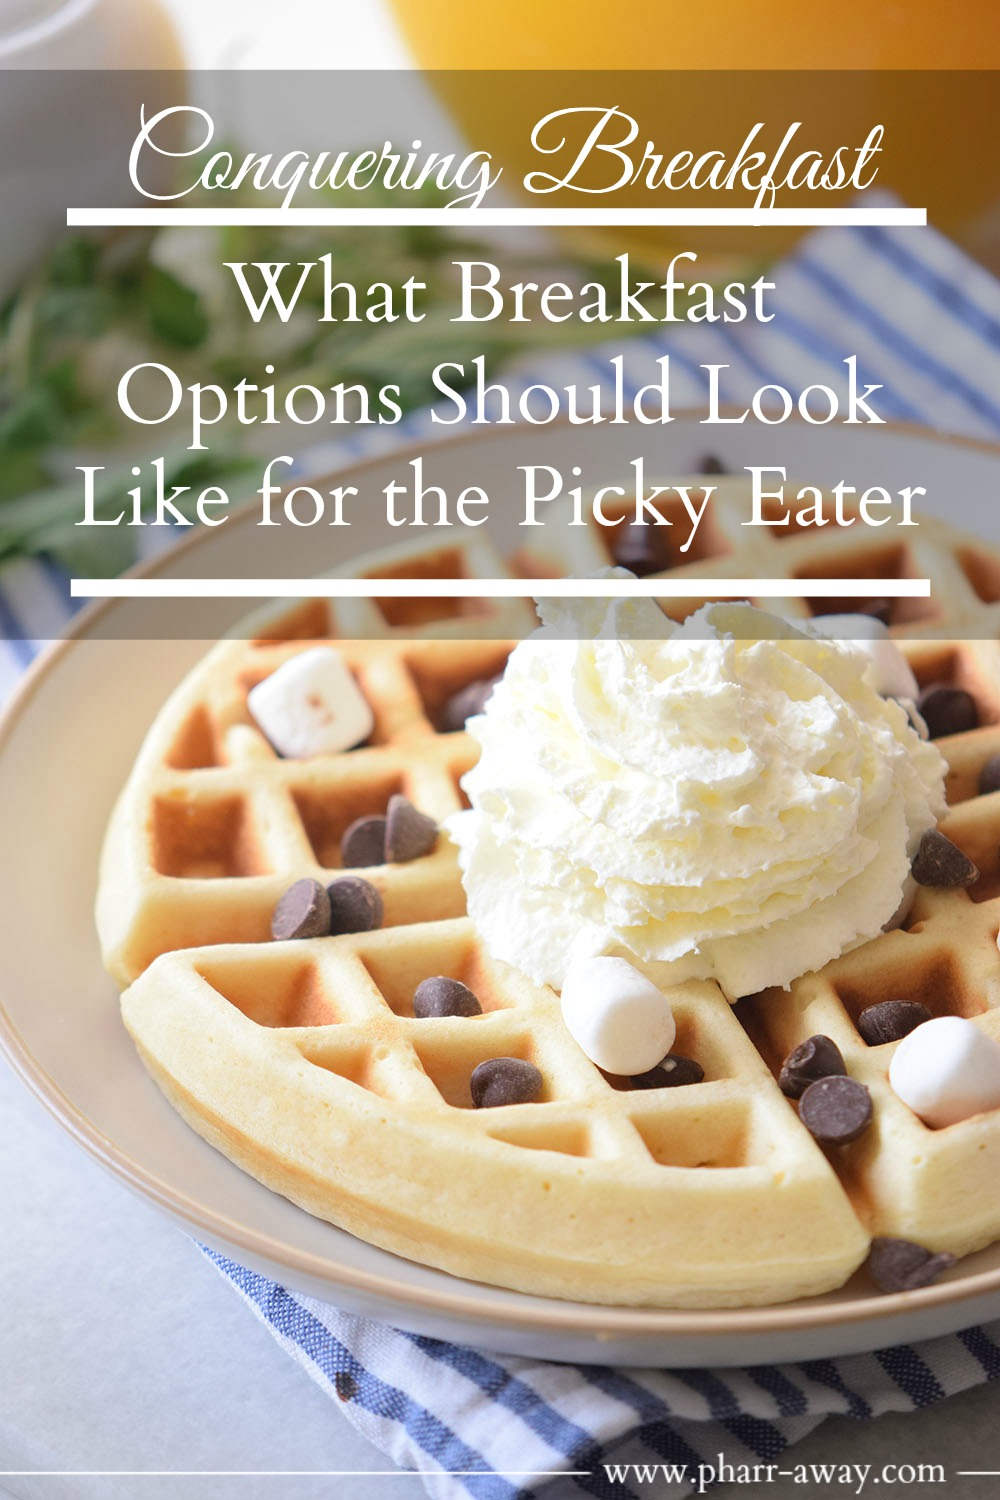 Conquering Breakfast with a Picky Eater